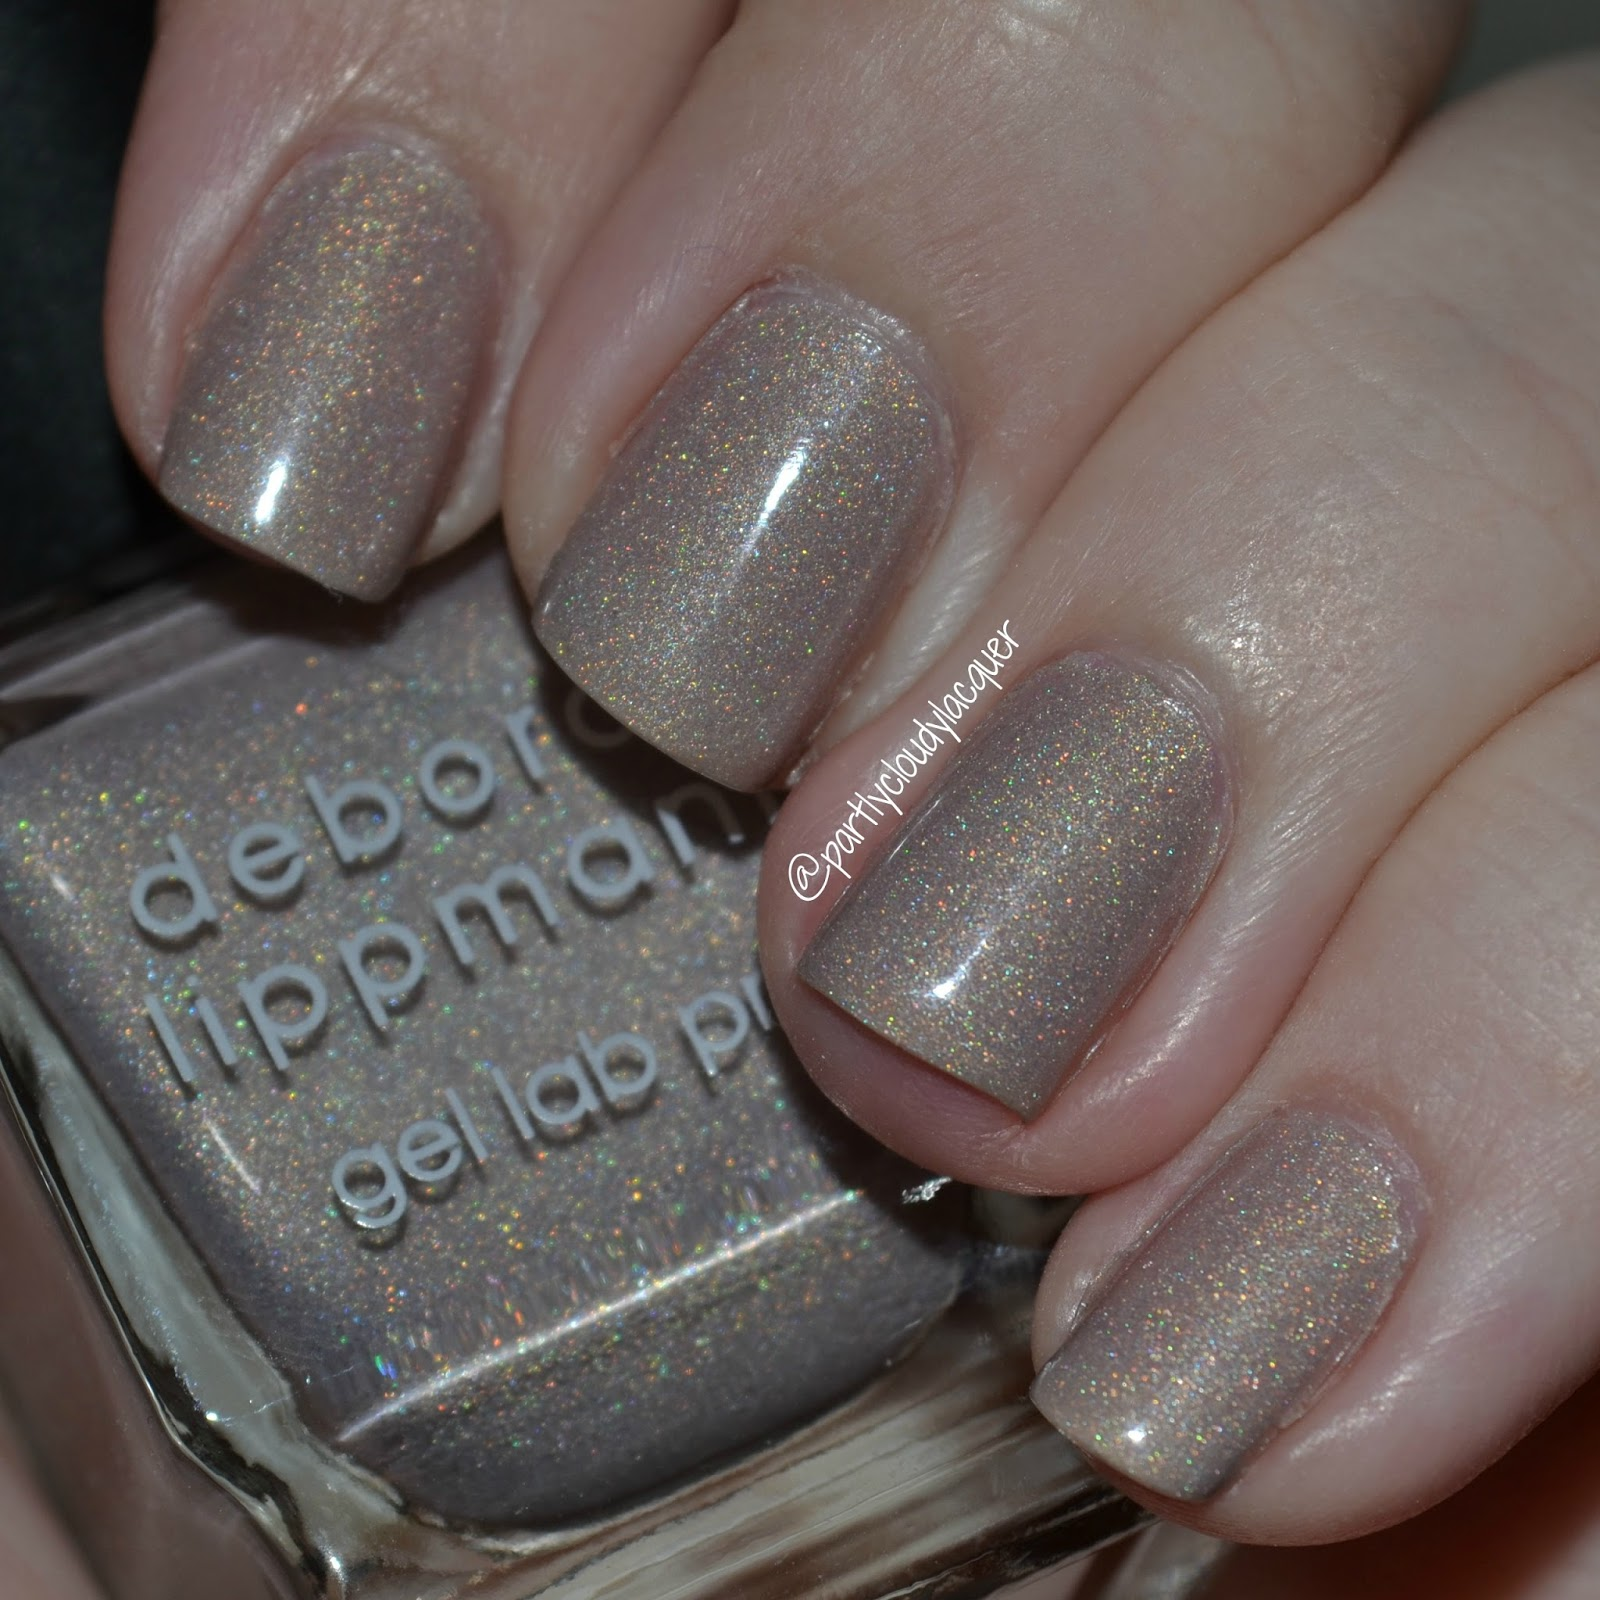 Deborah Lippmann Dirty Little Secret | Partly Cloudy With a Chance ...